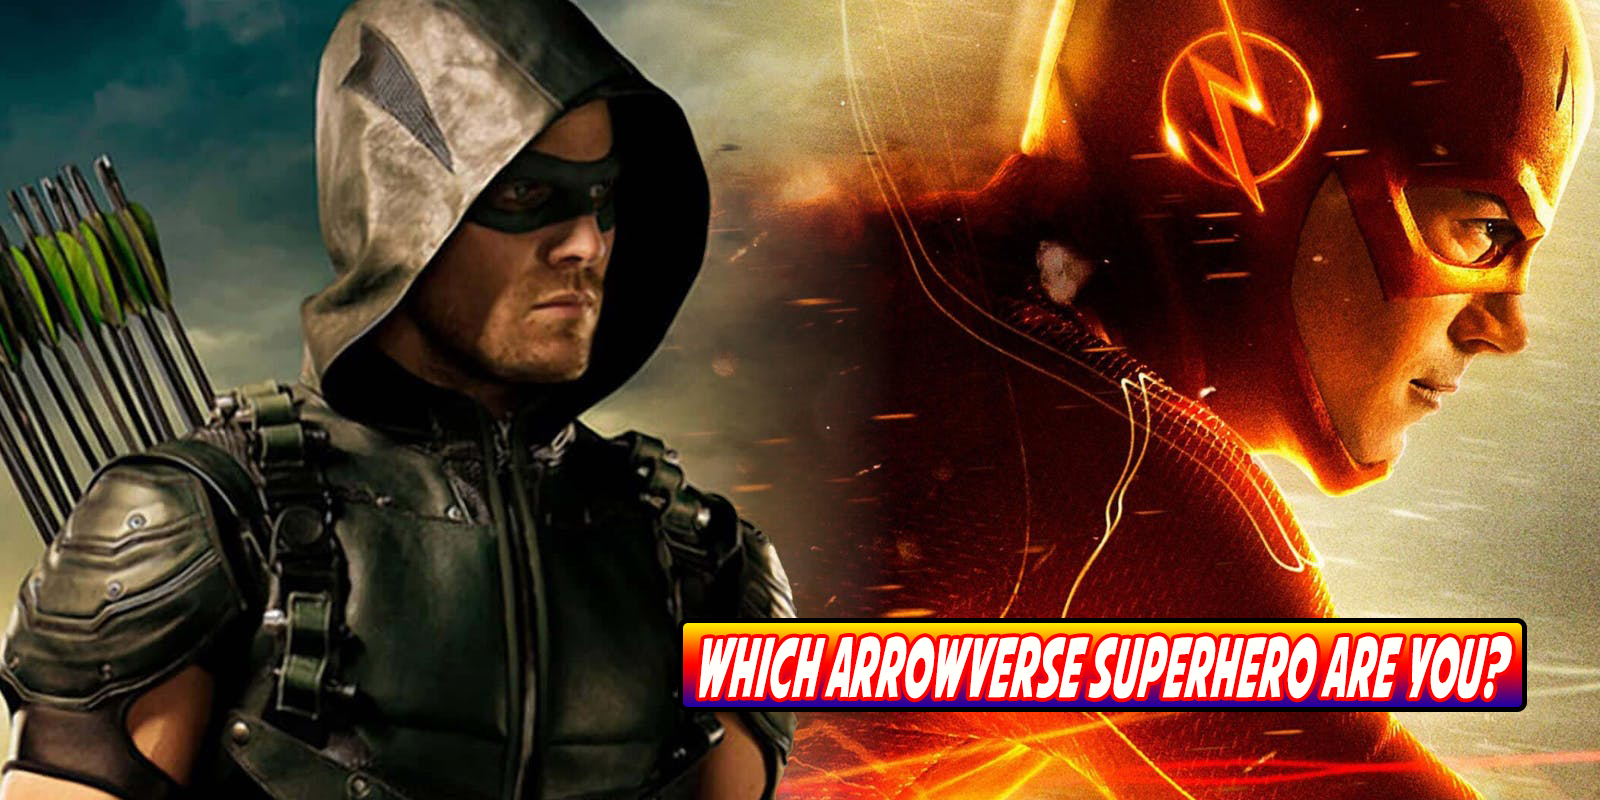 Take This Test And We'll Tell You Which Arrowverse Superhero You Are!